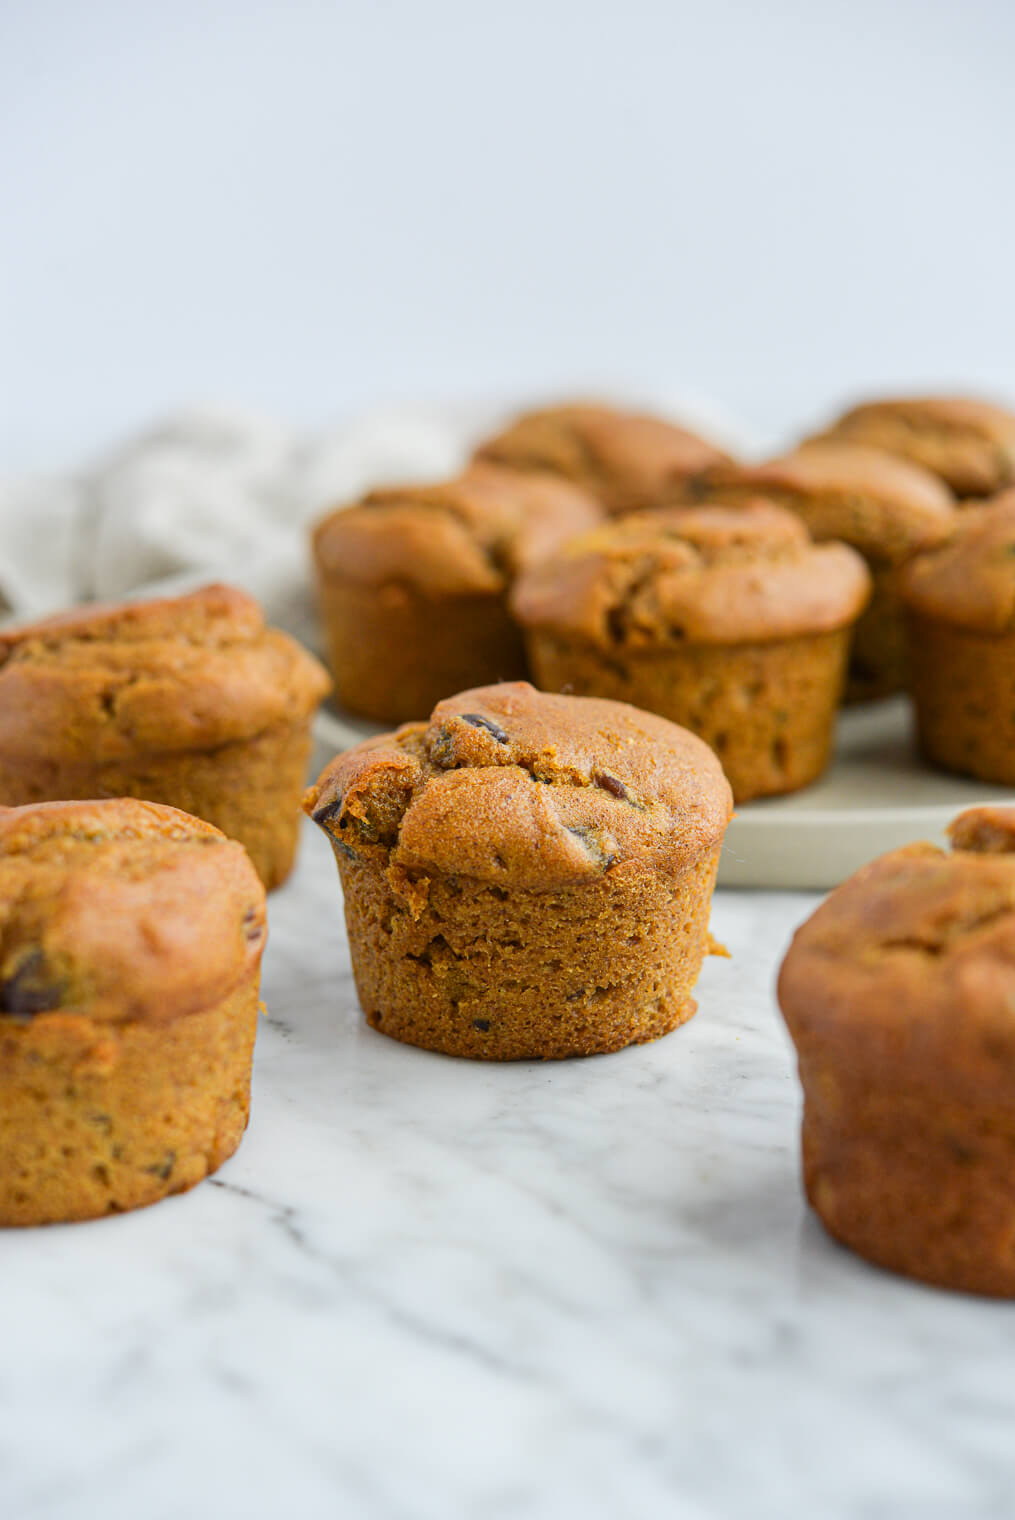 the side view of 10 pumpkin chocolate chip muffins all sitting on a marble surface